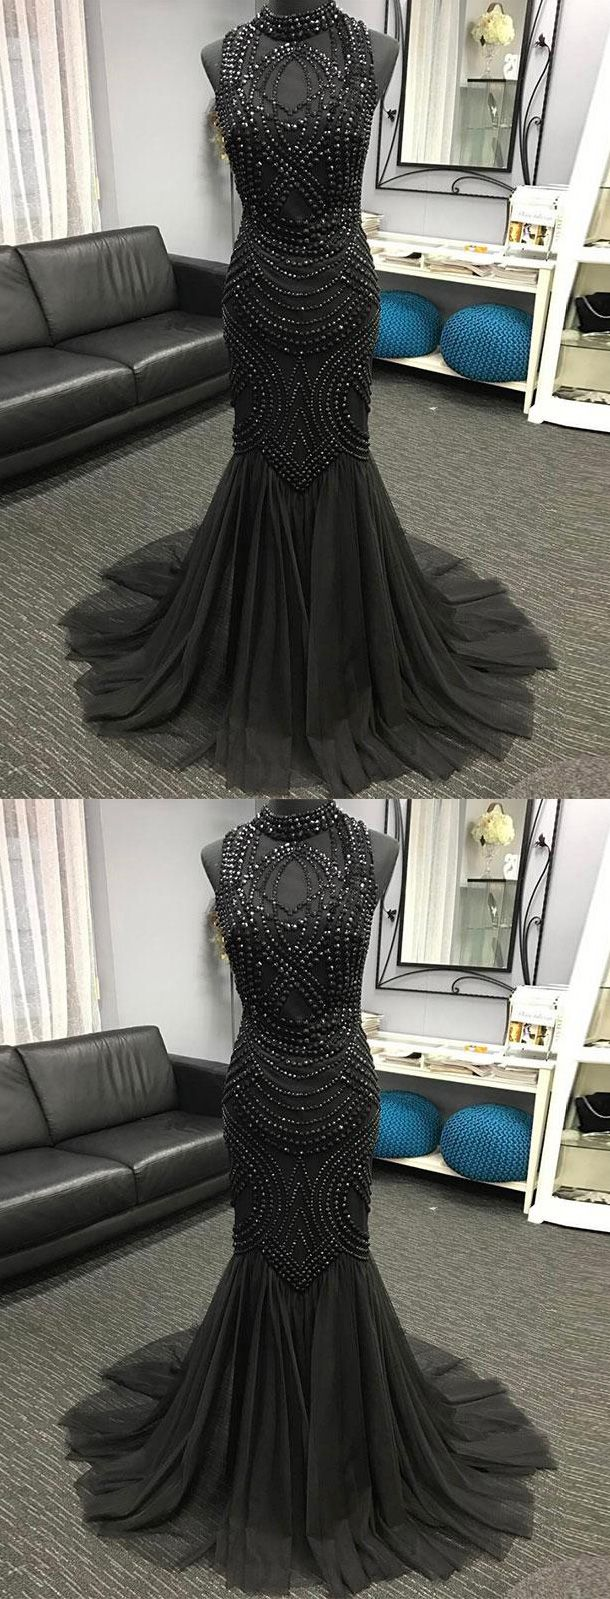 Mermaid High Neck Beaded Black Tulle Dress